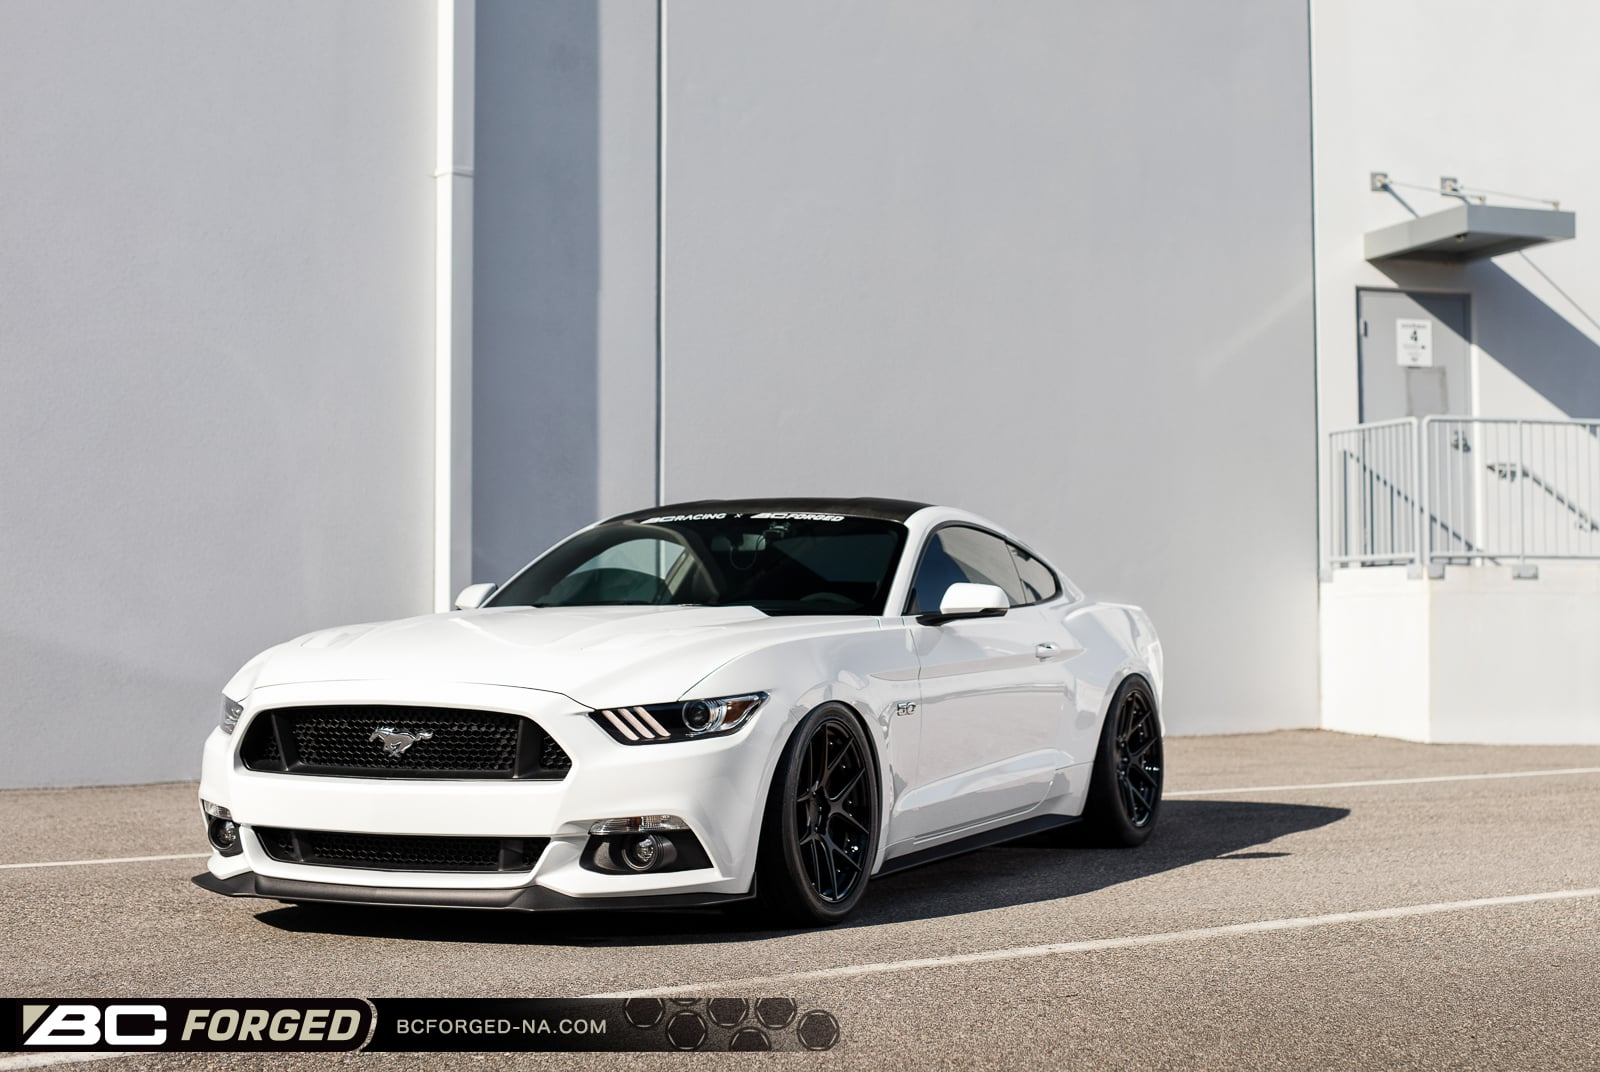 oxford-white-ford-mustang-gtpp-bc-forged-19-inch-modular-concave-wheels-hcs02s-front.jpg